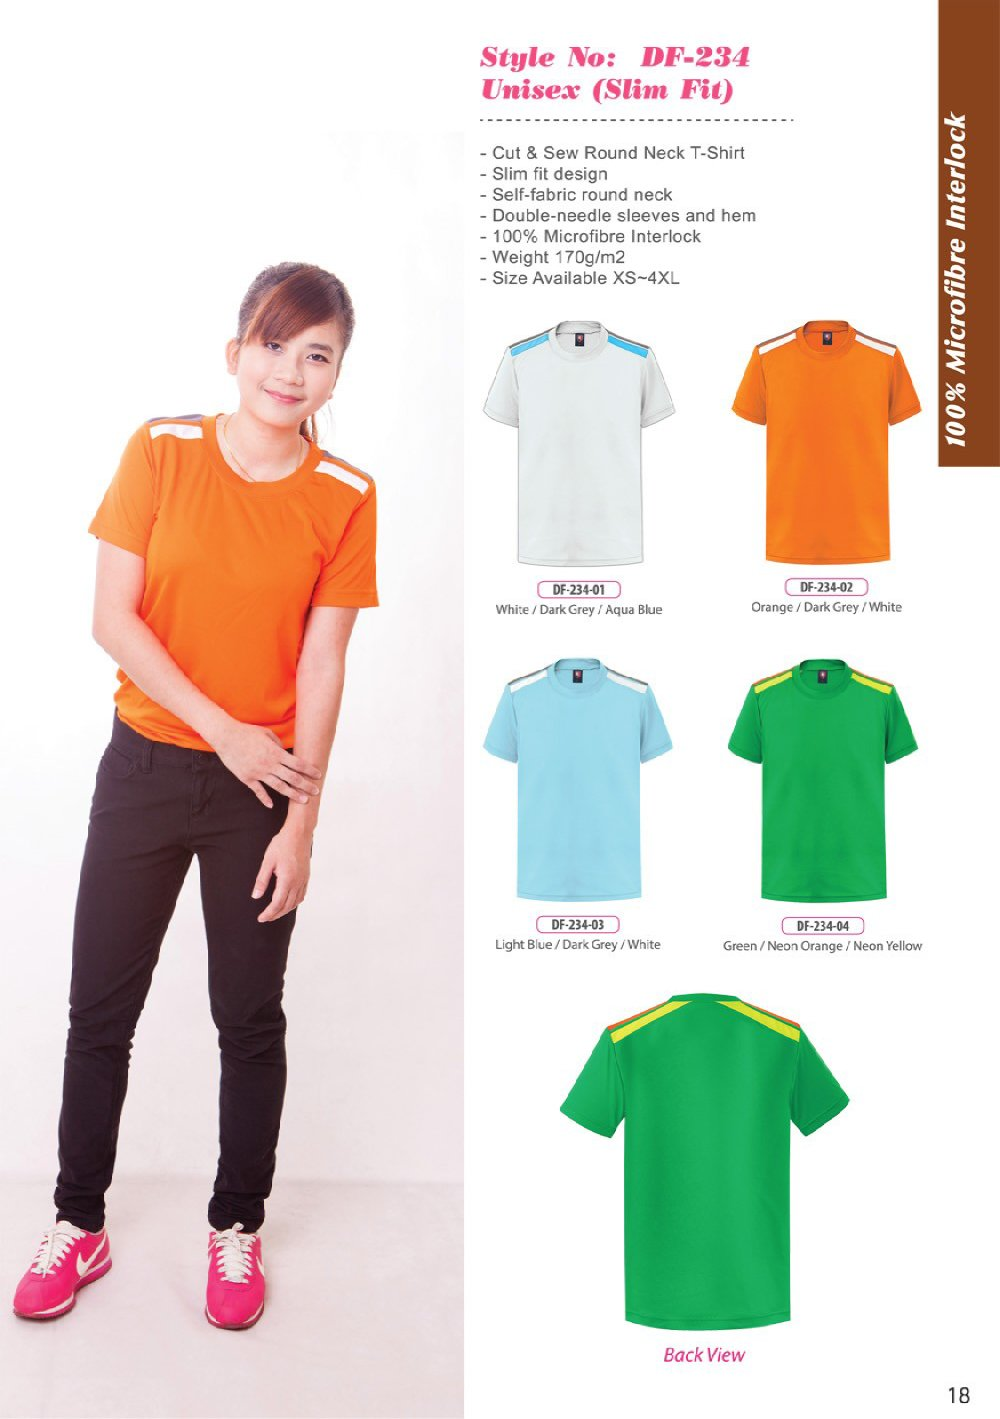 ID-DF 234 Unisex (Slim Fit) + Colors